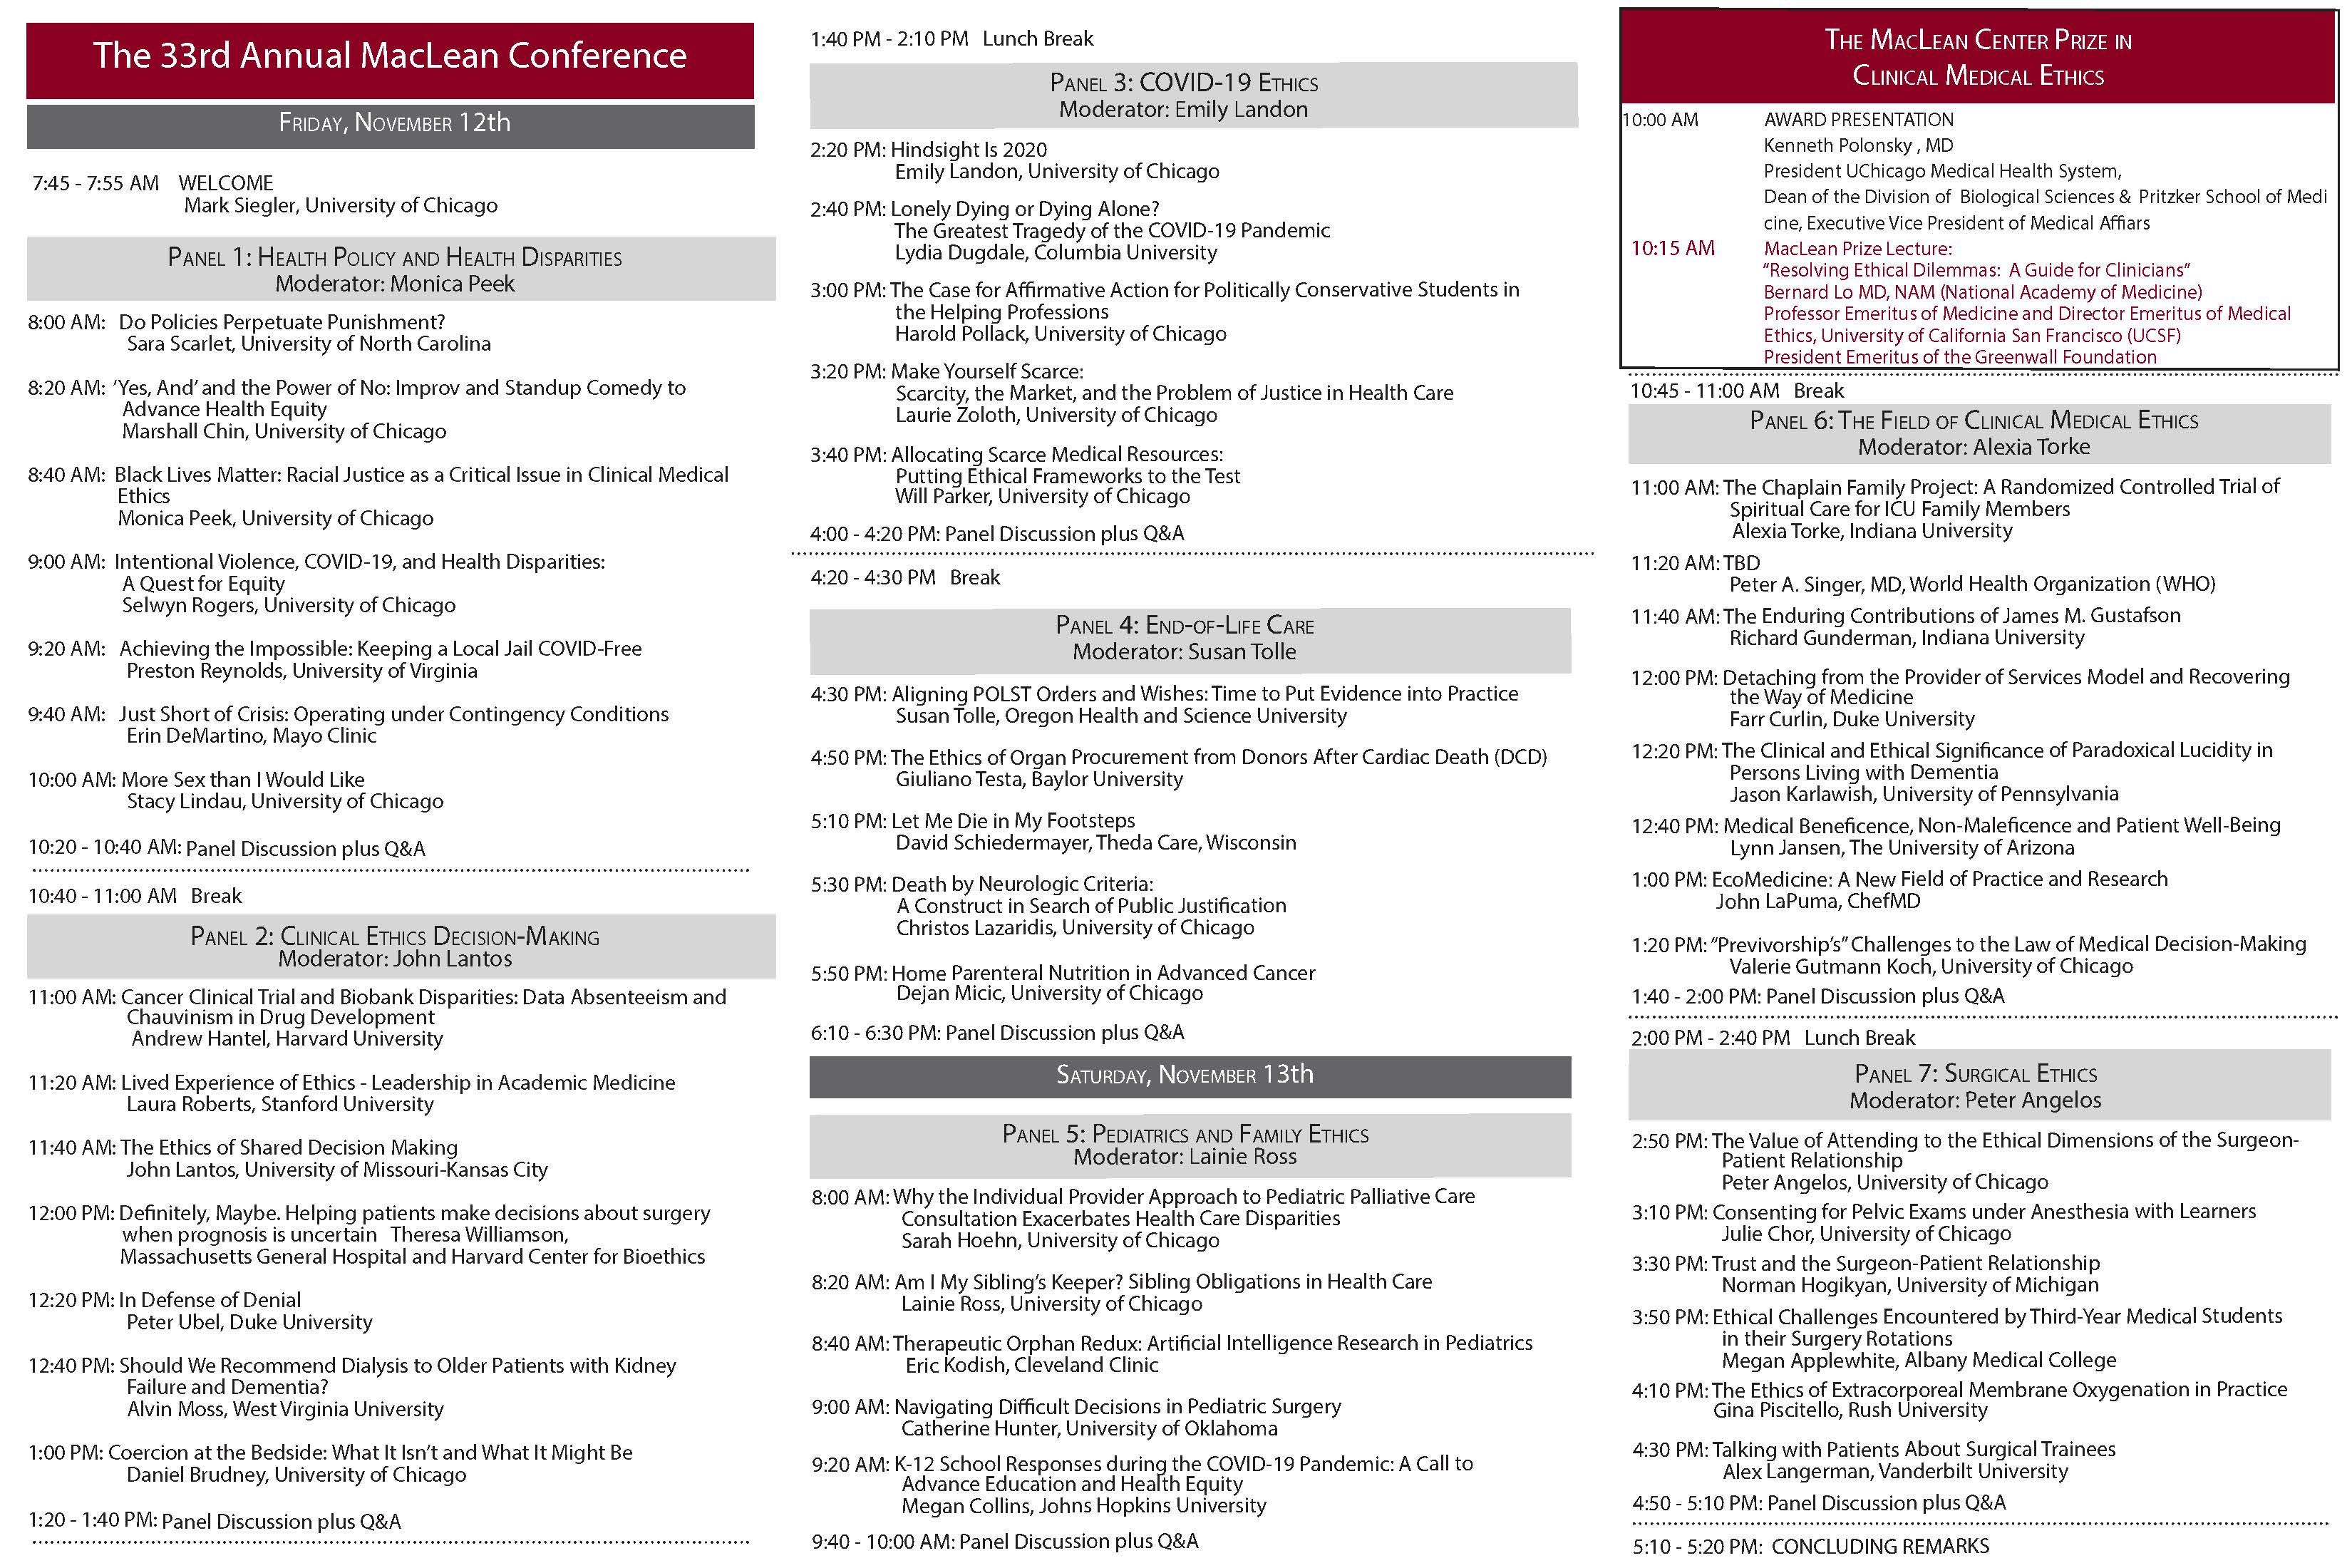 33rd Annual Dorothy J. MacLean Fellows Conference on Clinical Medical Ethics Schedule